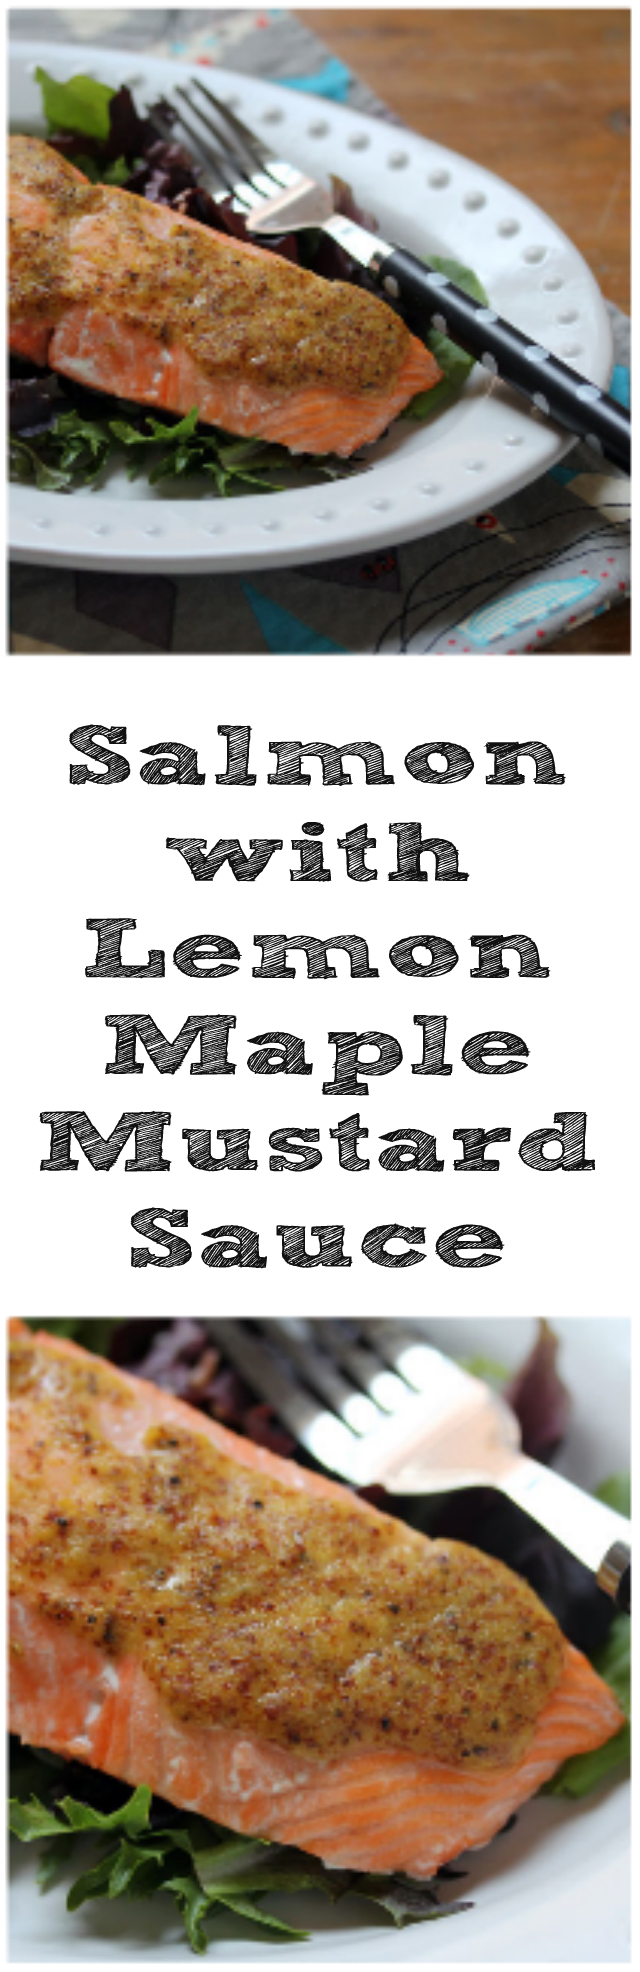 Salmon with a lemon maple mustard sauce, 10 minutes of amazing goodness from The Perfect Pantry.